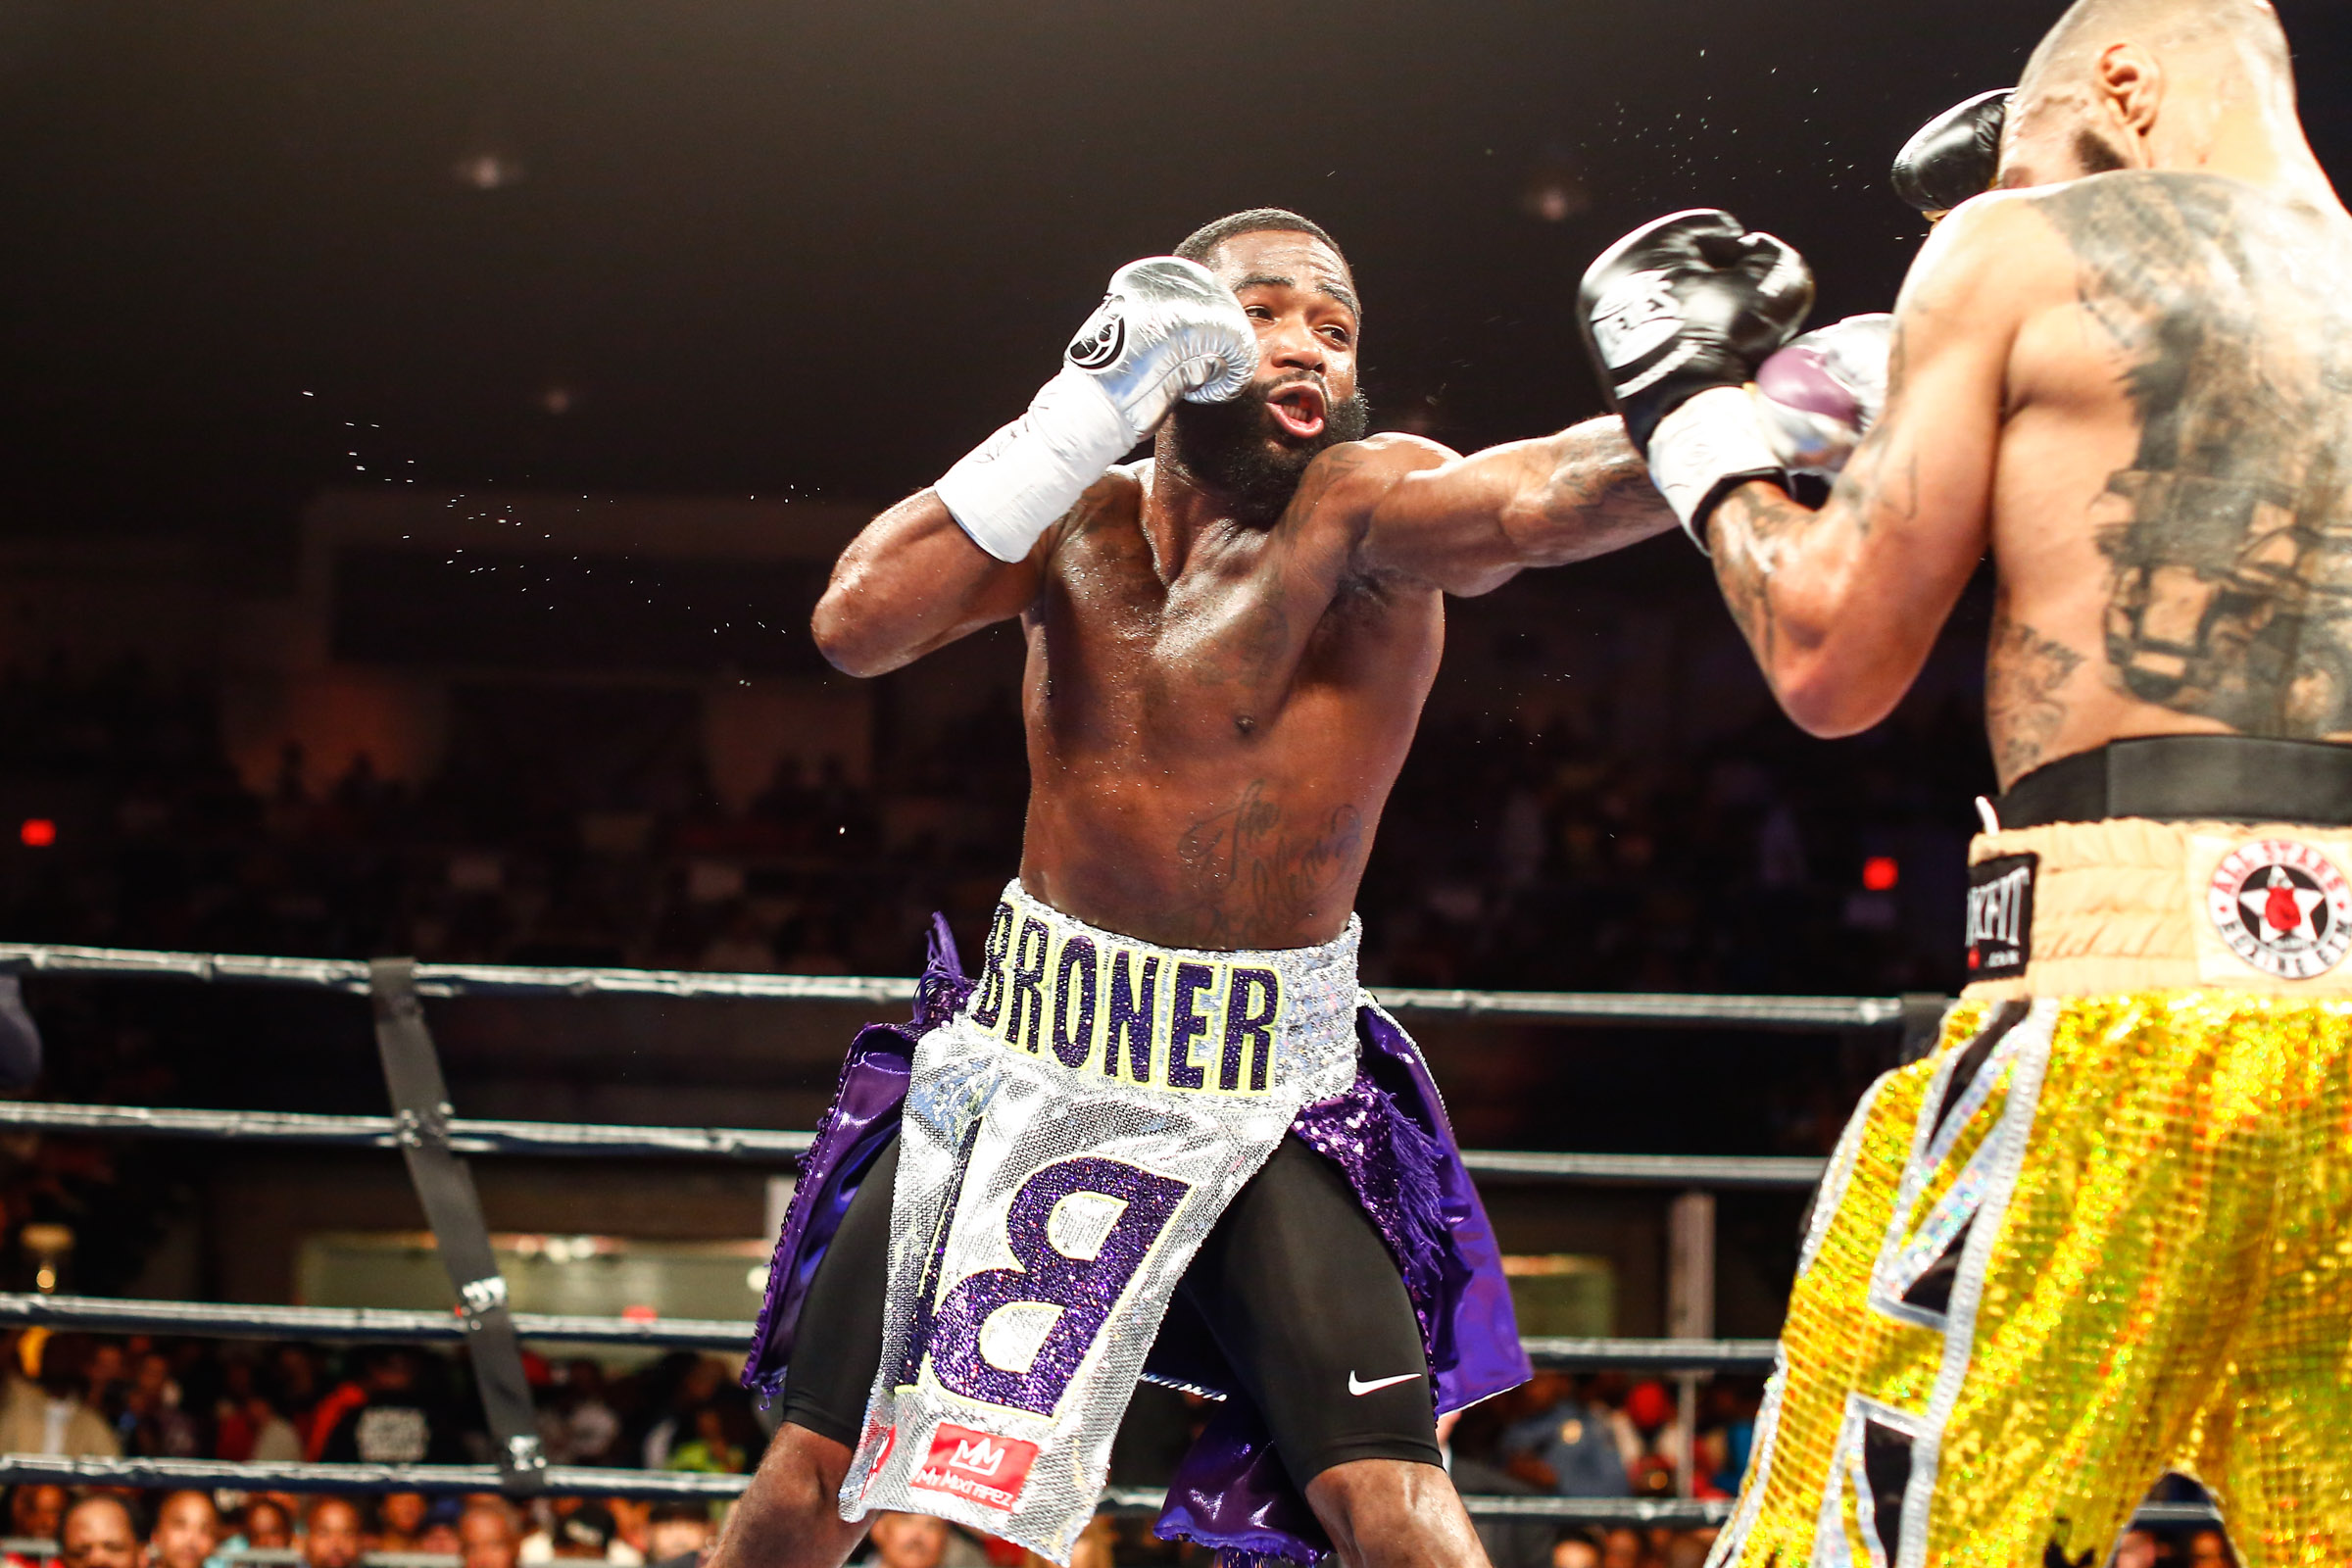 LR_FIGHT NIGHT-BRONER vs THEOPHANE-04012016-7795.jpg